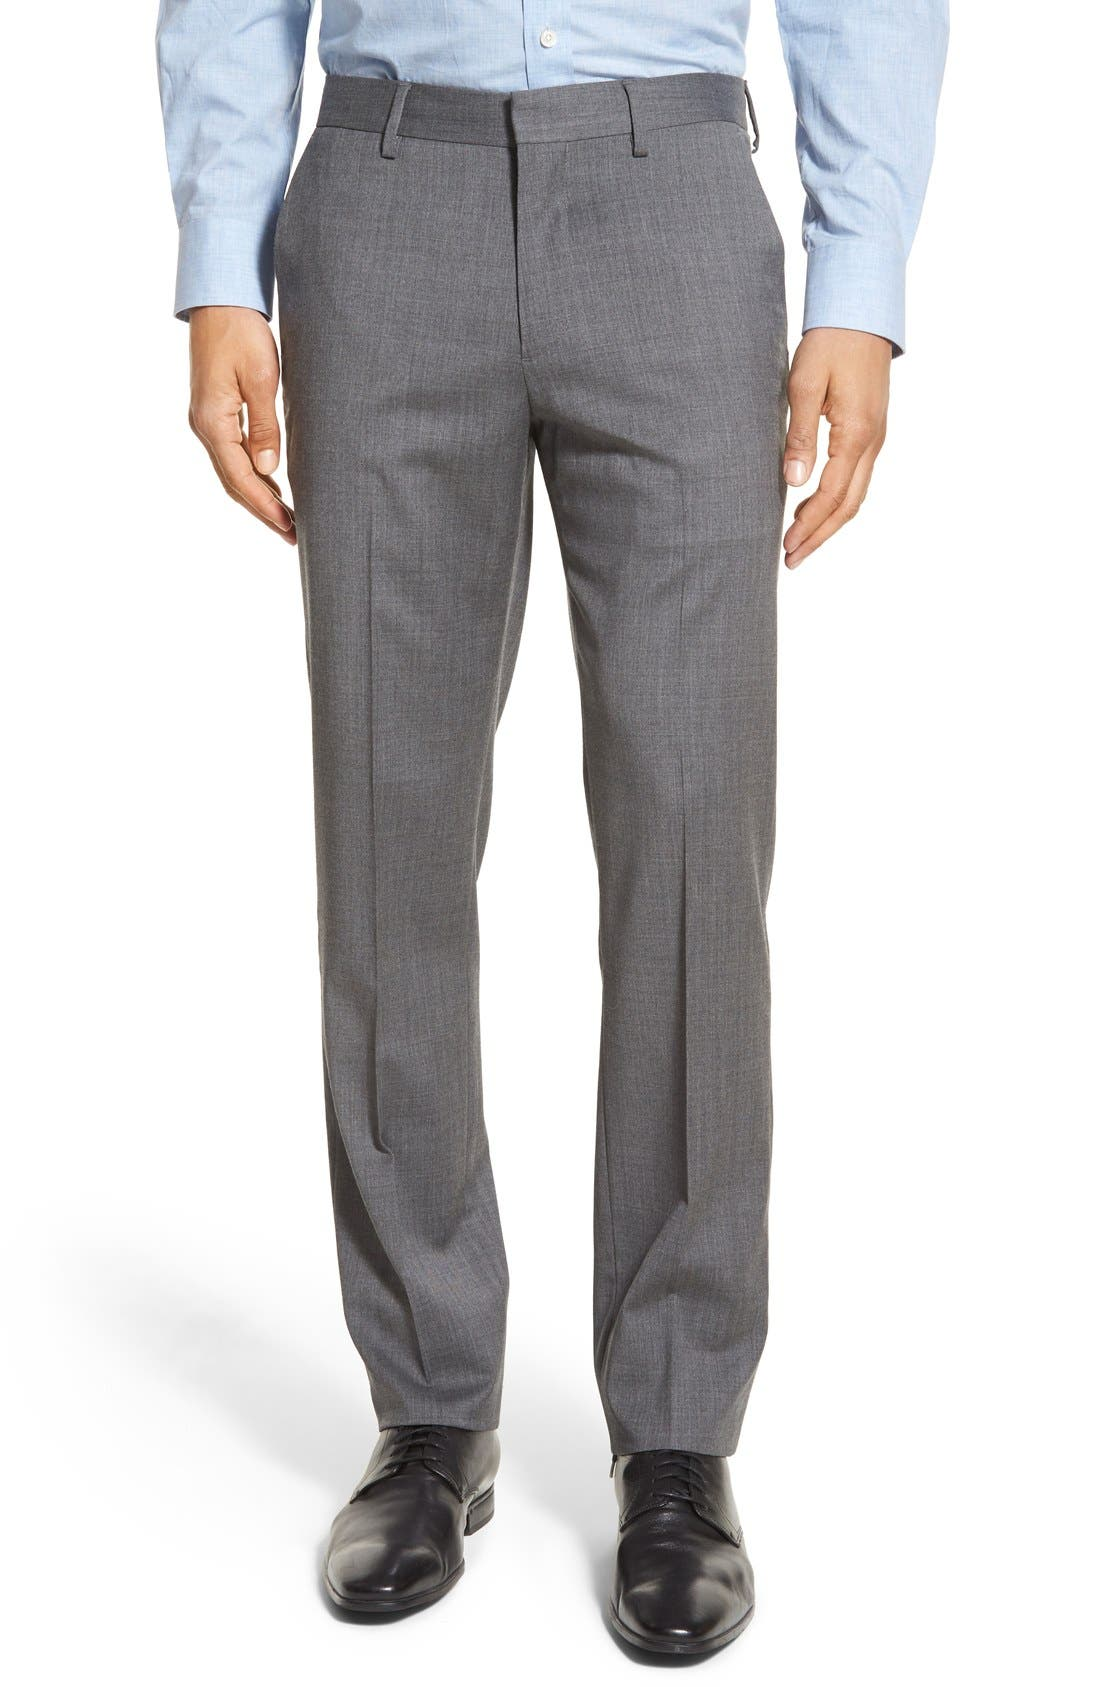 Bonobos Jetsetter Slim Fit Flat Front Stretch Wool Trousers Nordstrom